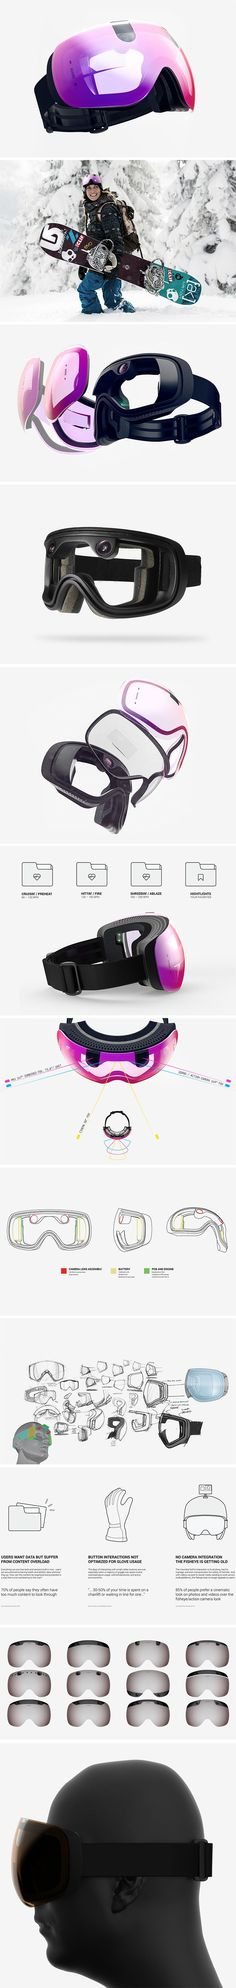 e61d14db015 The Best Action Cam for Solo Skiers and Snowboarders